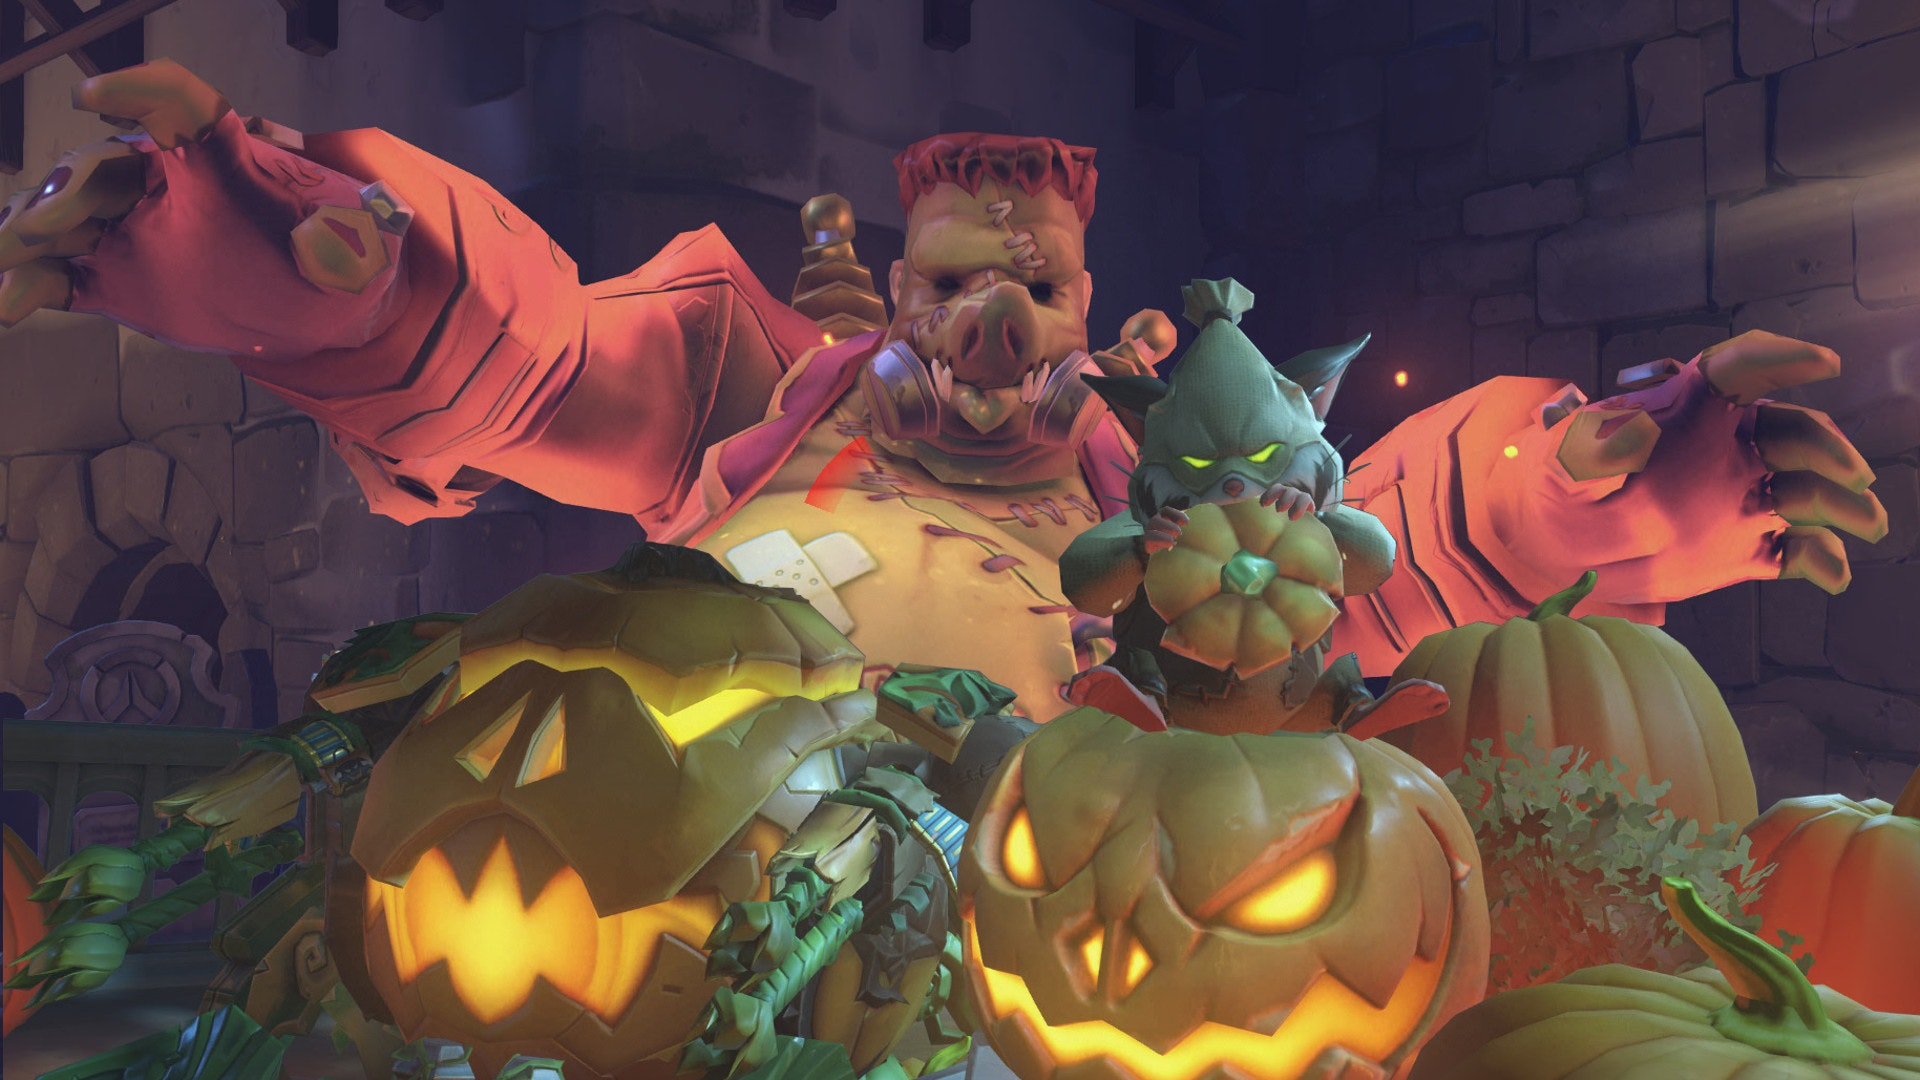 When Is Overwatch Halloween 2020 Overwatch' Halloween 2019 skins, event, release date, start time